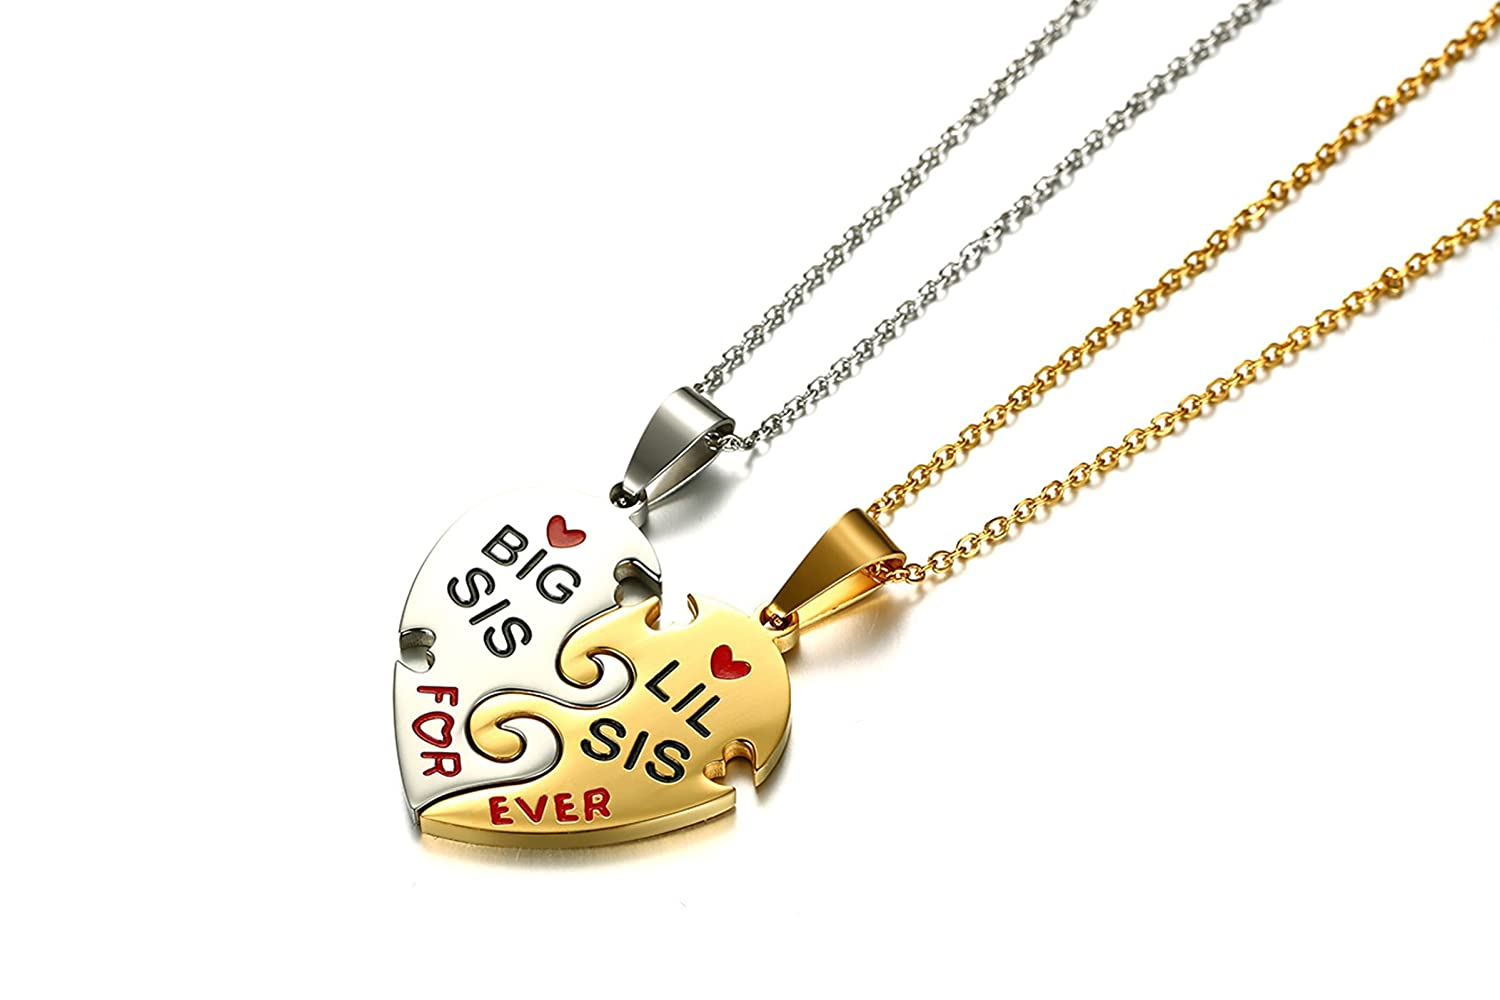 Big Sis Lil Sis Pendant 18 Chains Included Gnzoe Sisters Heart Pendant Necklace for Sisters Necklaces Set 2pcs